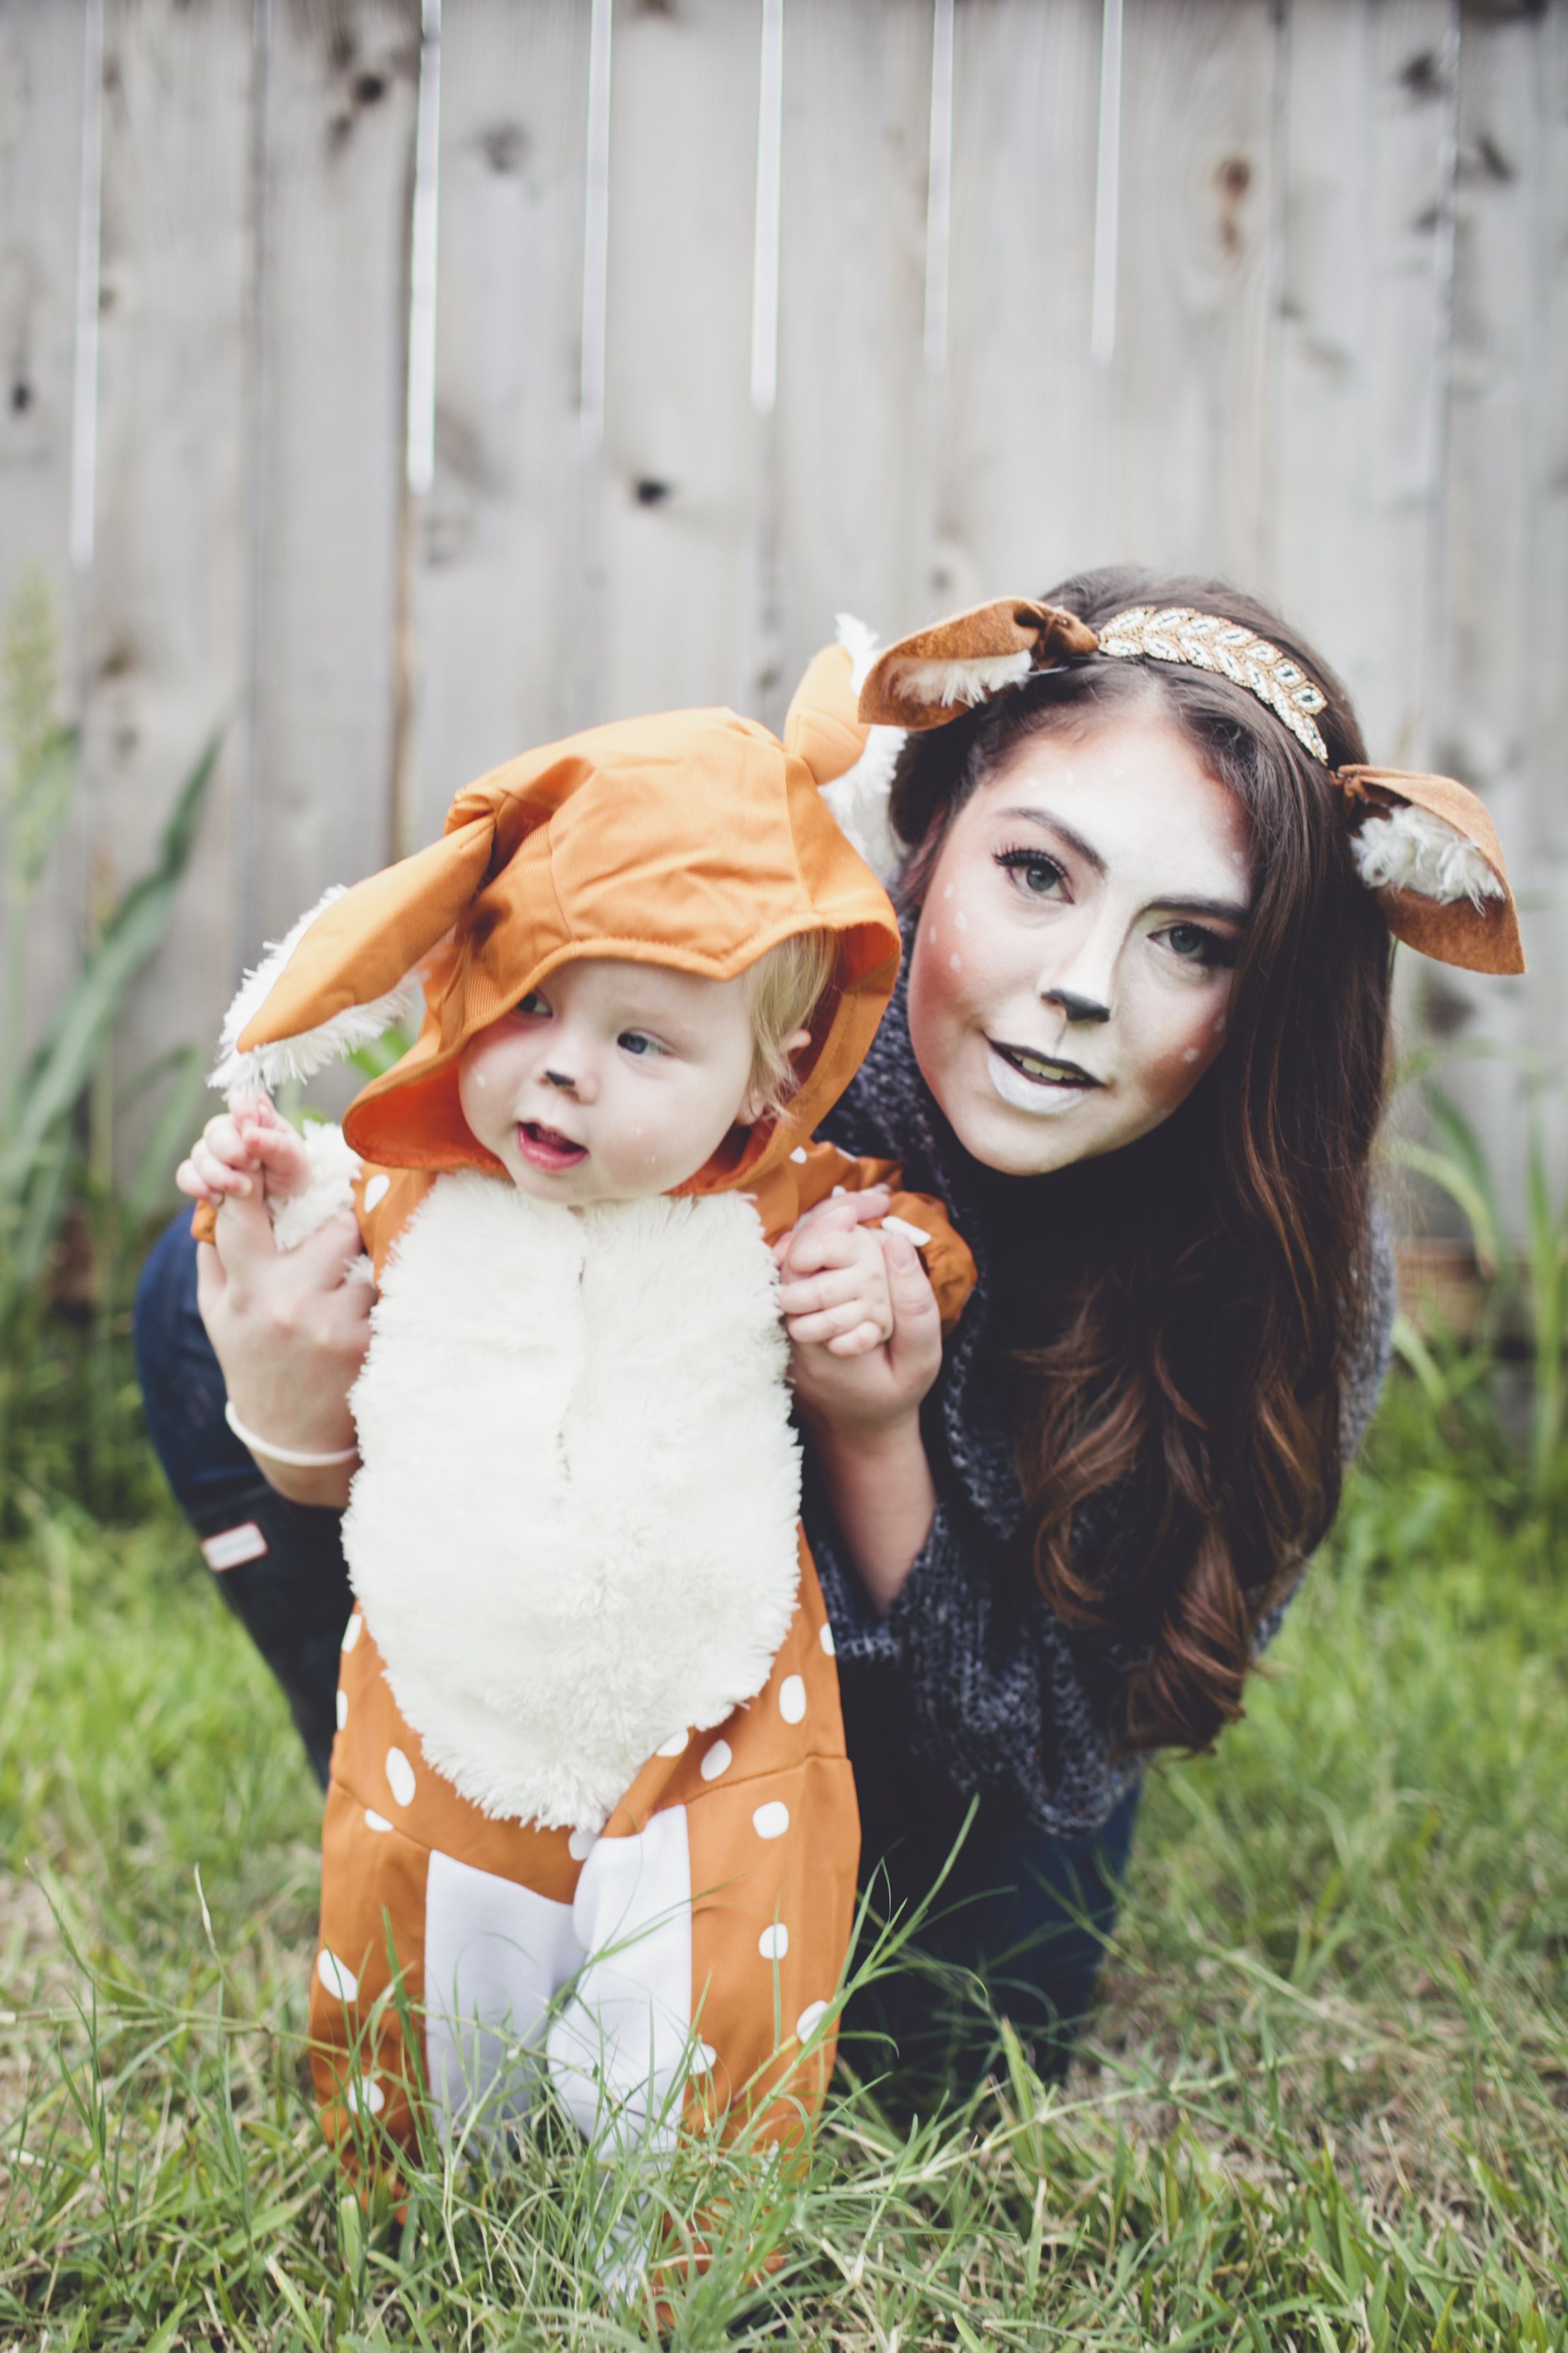 Baby Halloween Costumes Boy And Girl.Doe And Fawn Deer Costume Mother And Baby Costume For